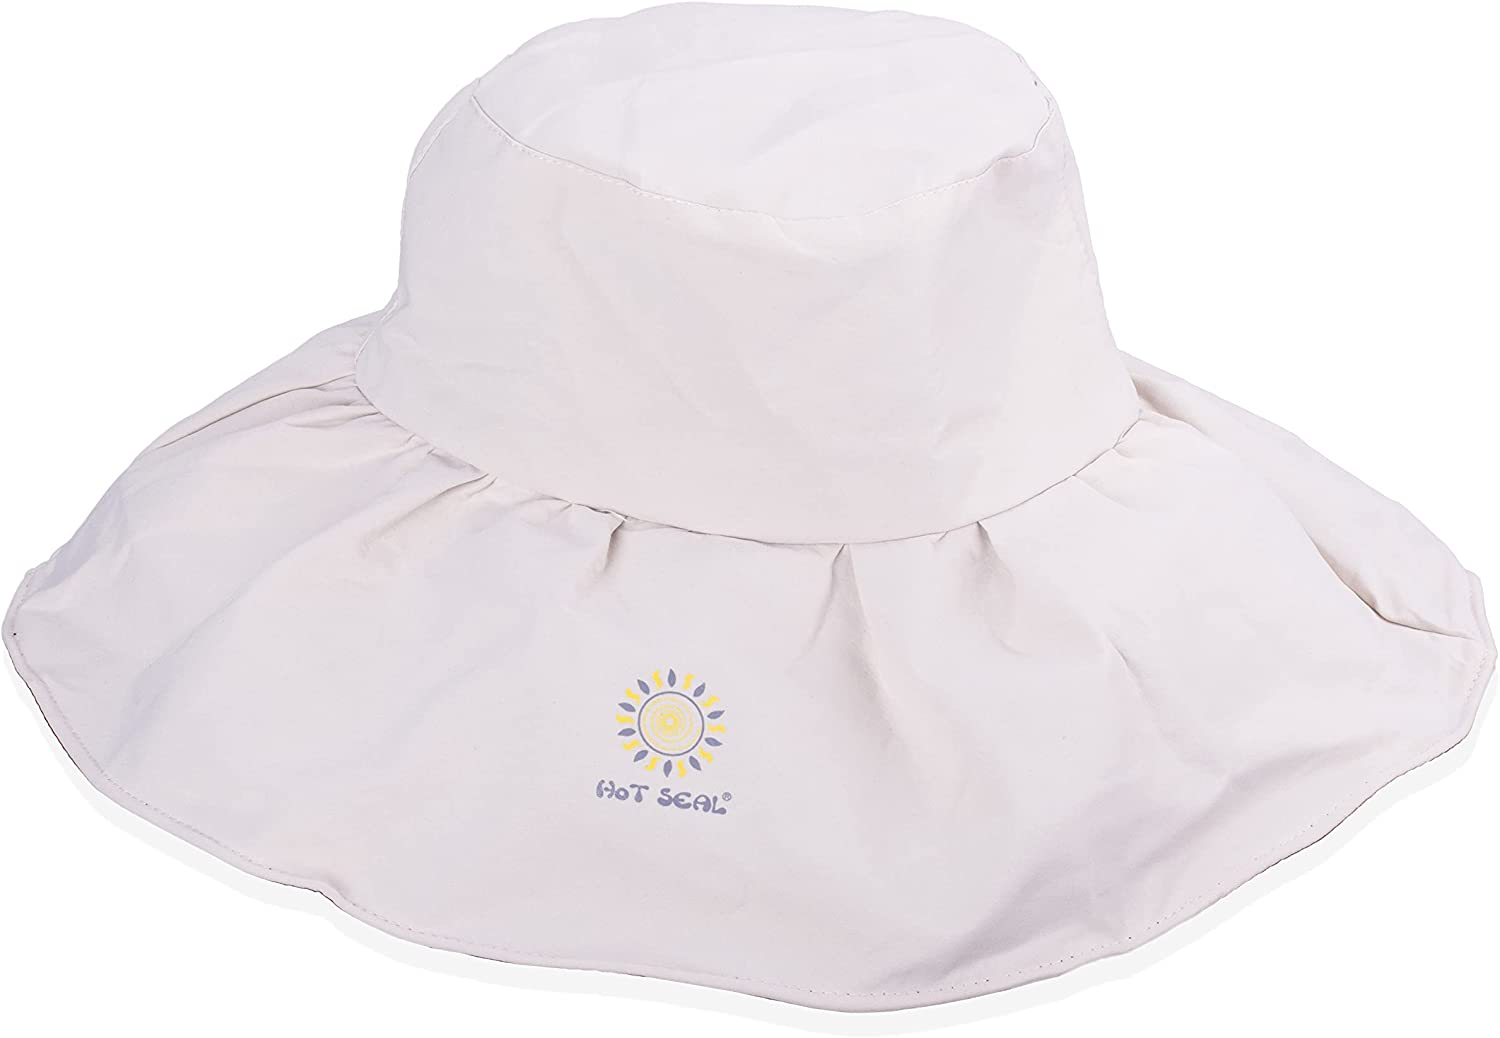 Very popular HOT SEAL Ladies Sun Hat for Large-scale sale Summer Protection Women Brim UV Wide